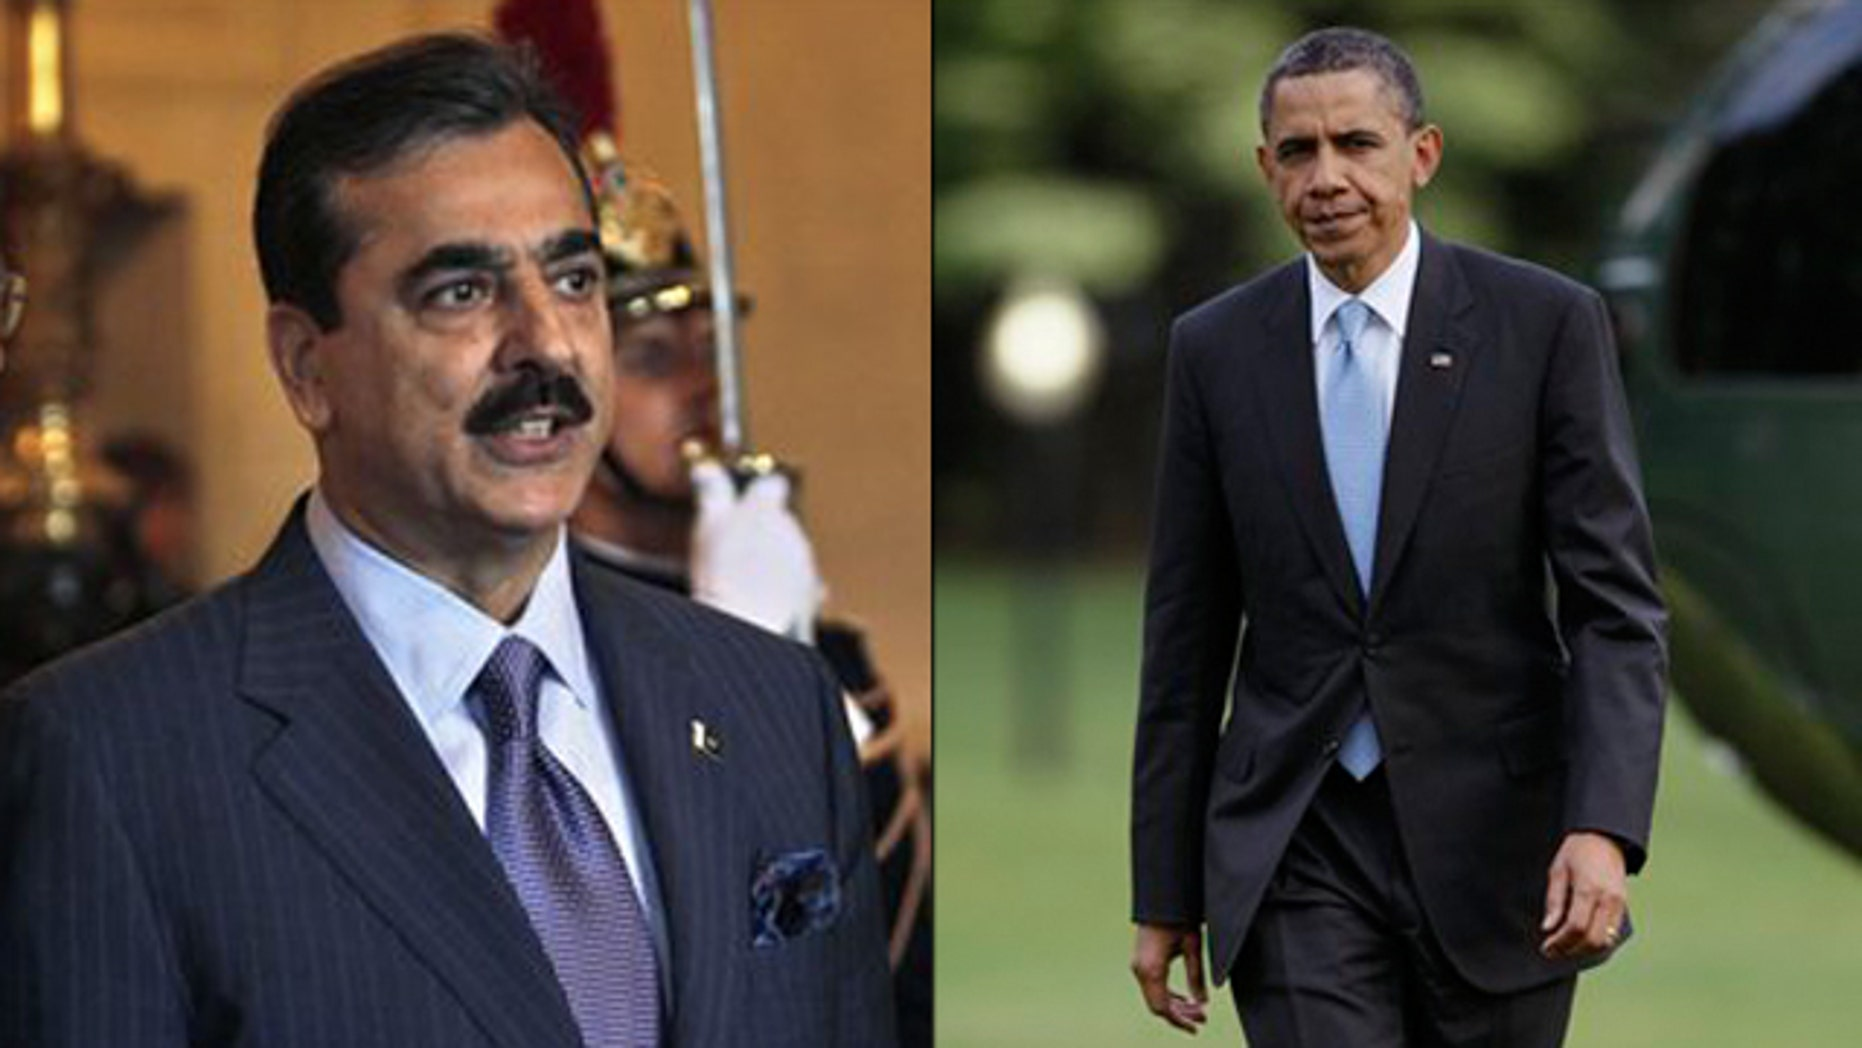 Shown here are President Obama, right, and Pakistani Prime Minister Yousuf Raza Gilani, left.